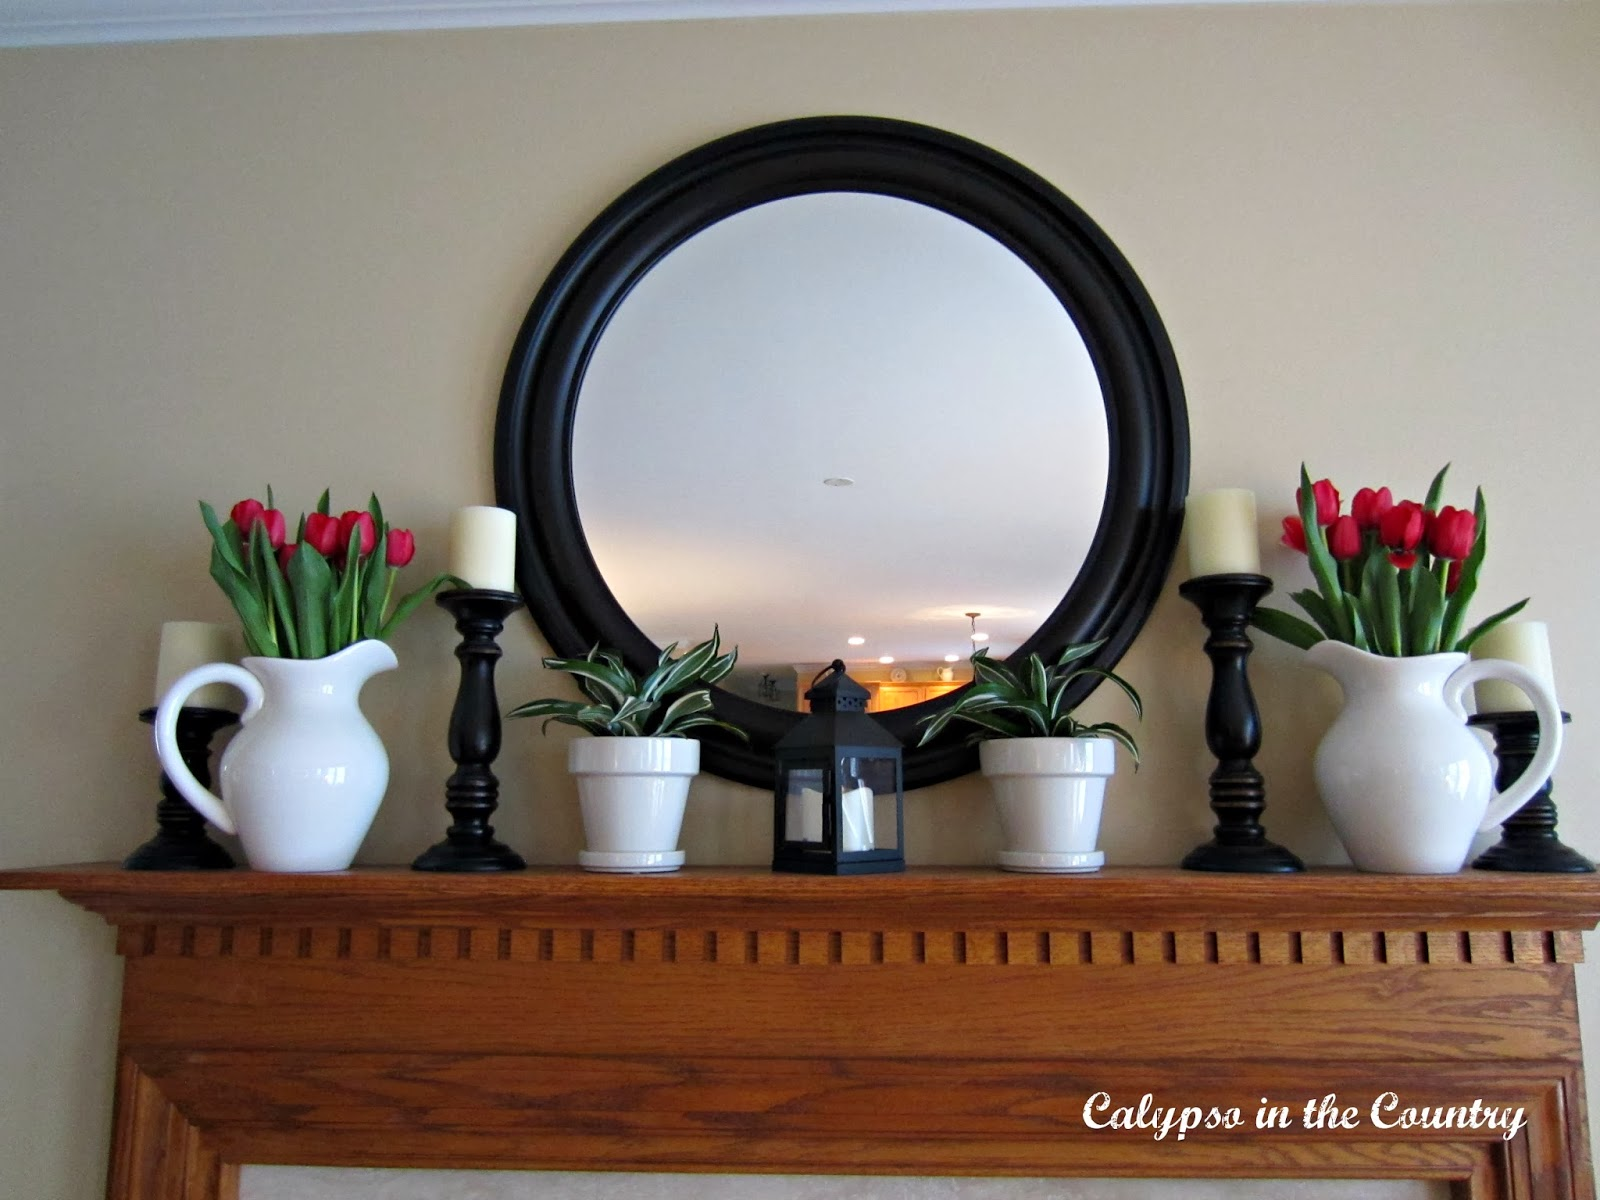 Simple Spring Mantel using tulips, black and white and a Round Mirror